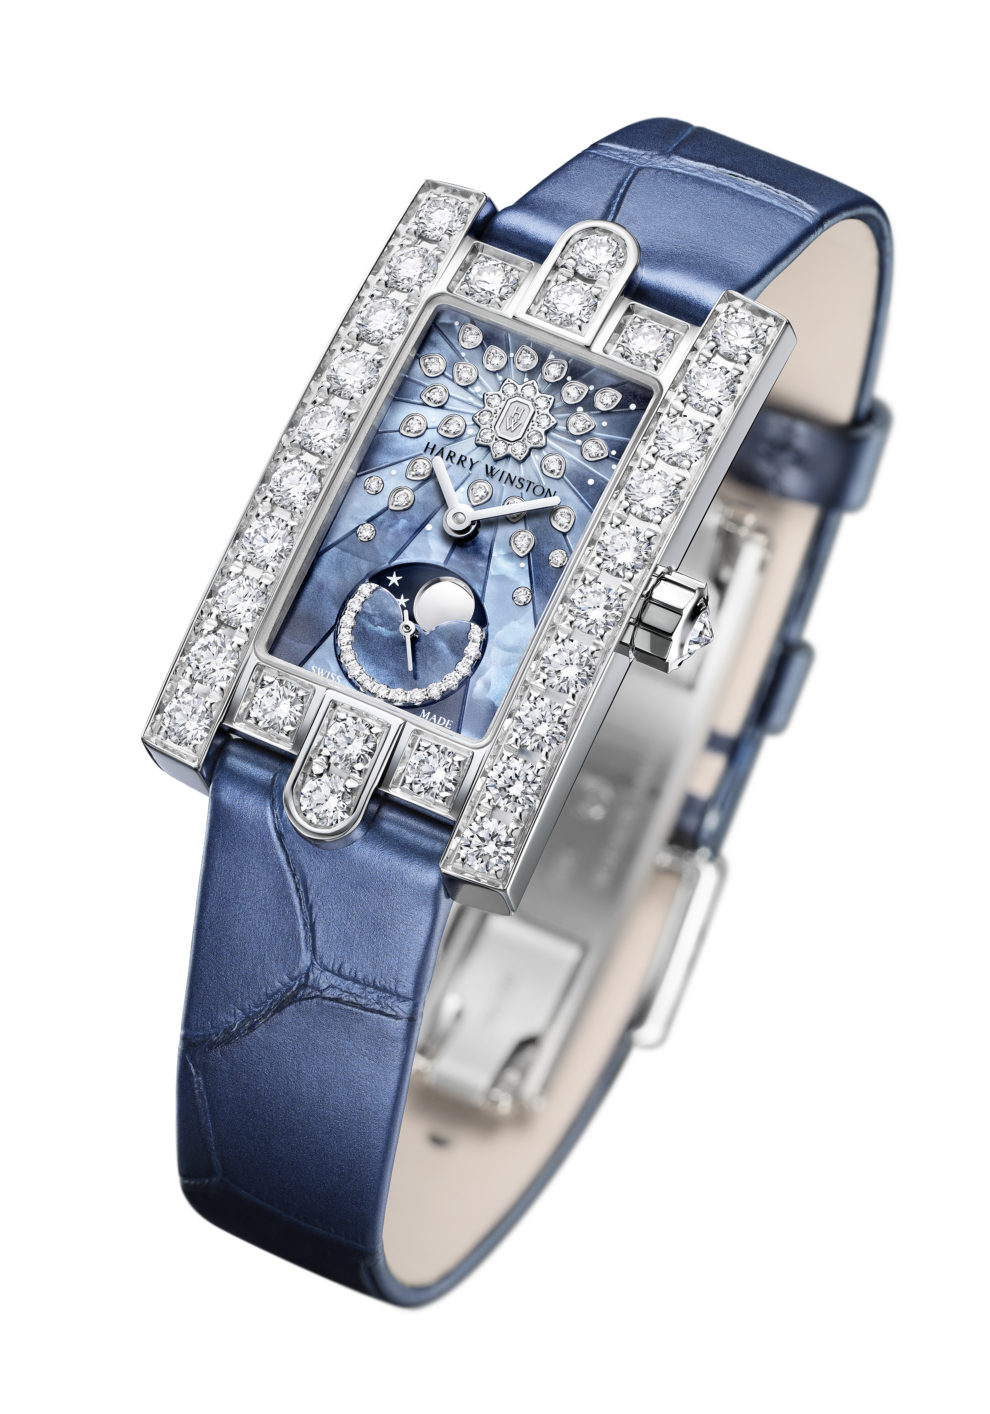 Все оттенки ясного неба в часах Harry Winston Avenue